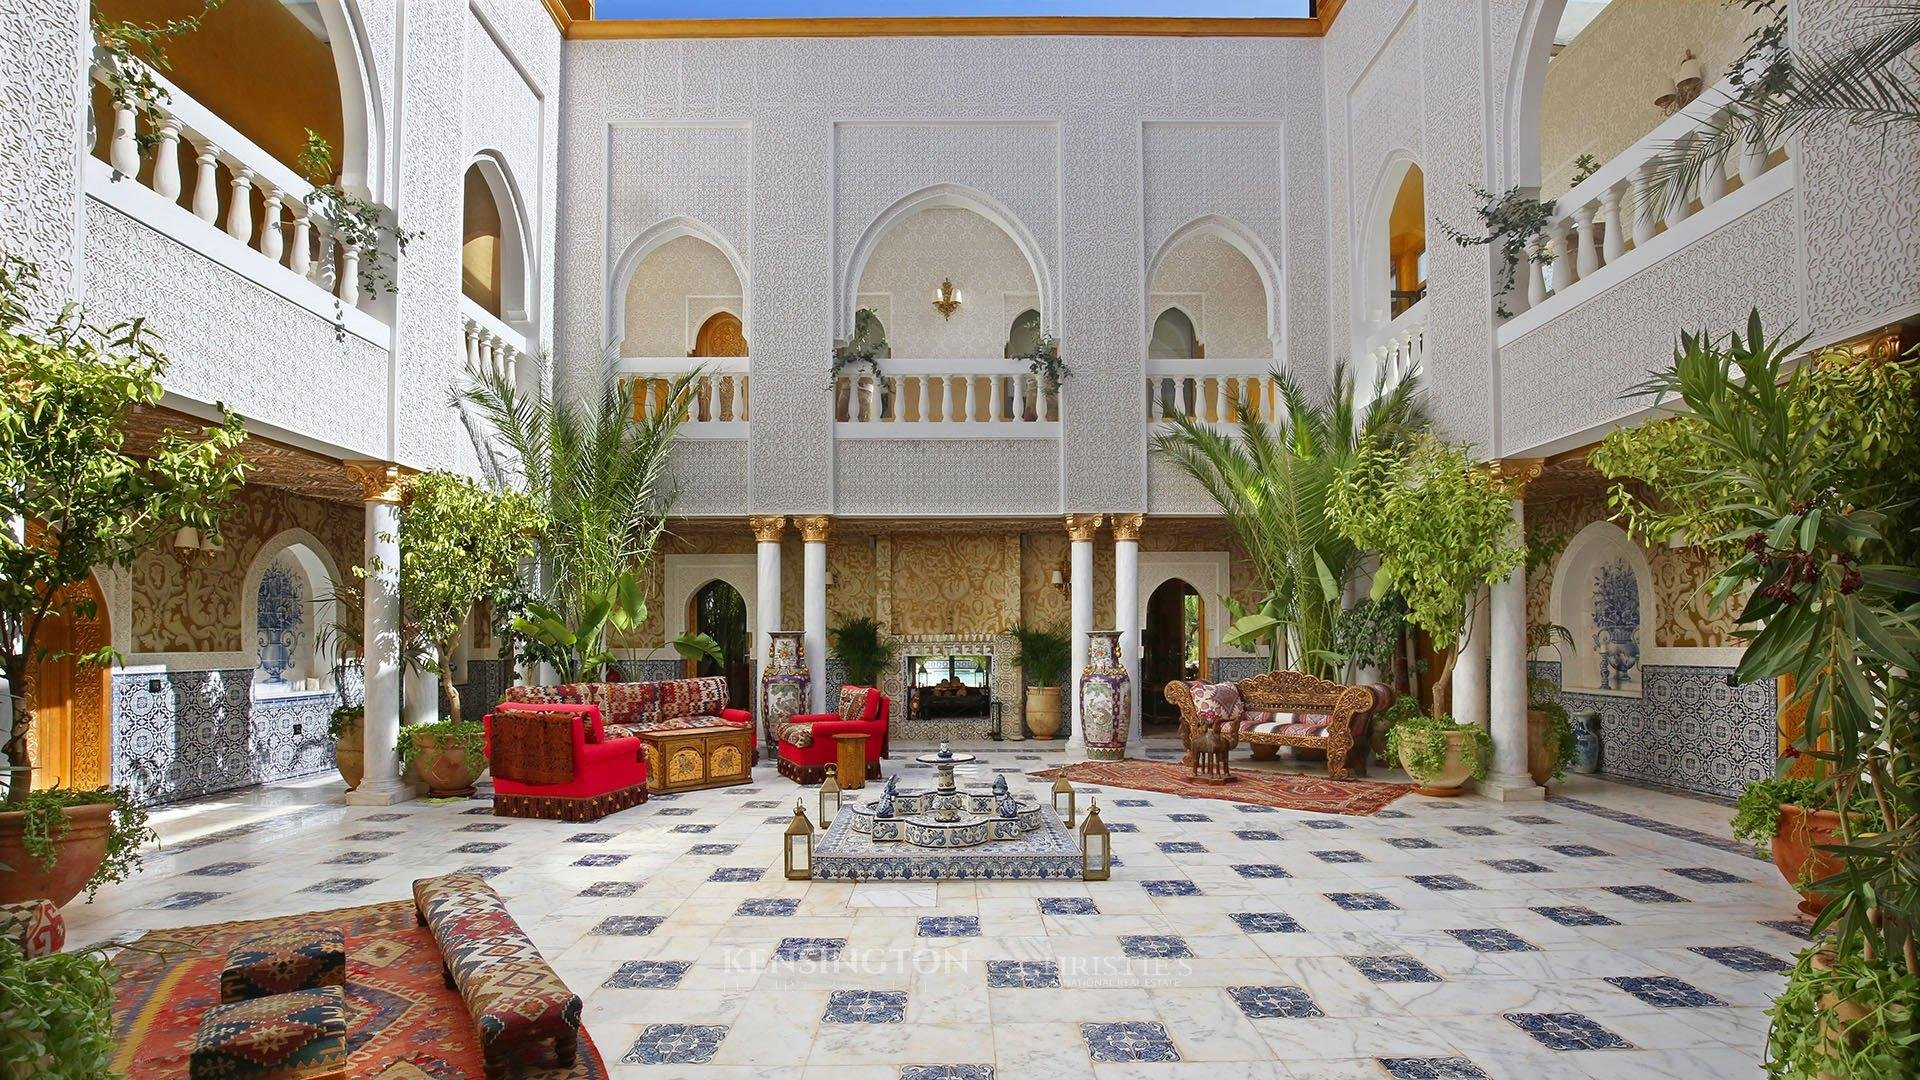 KPPM00835: Villa Glorious Luxury Villa Marrakech Morocco